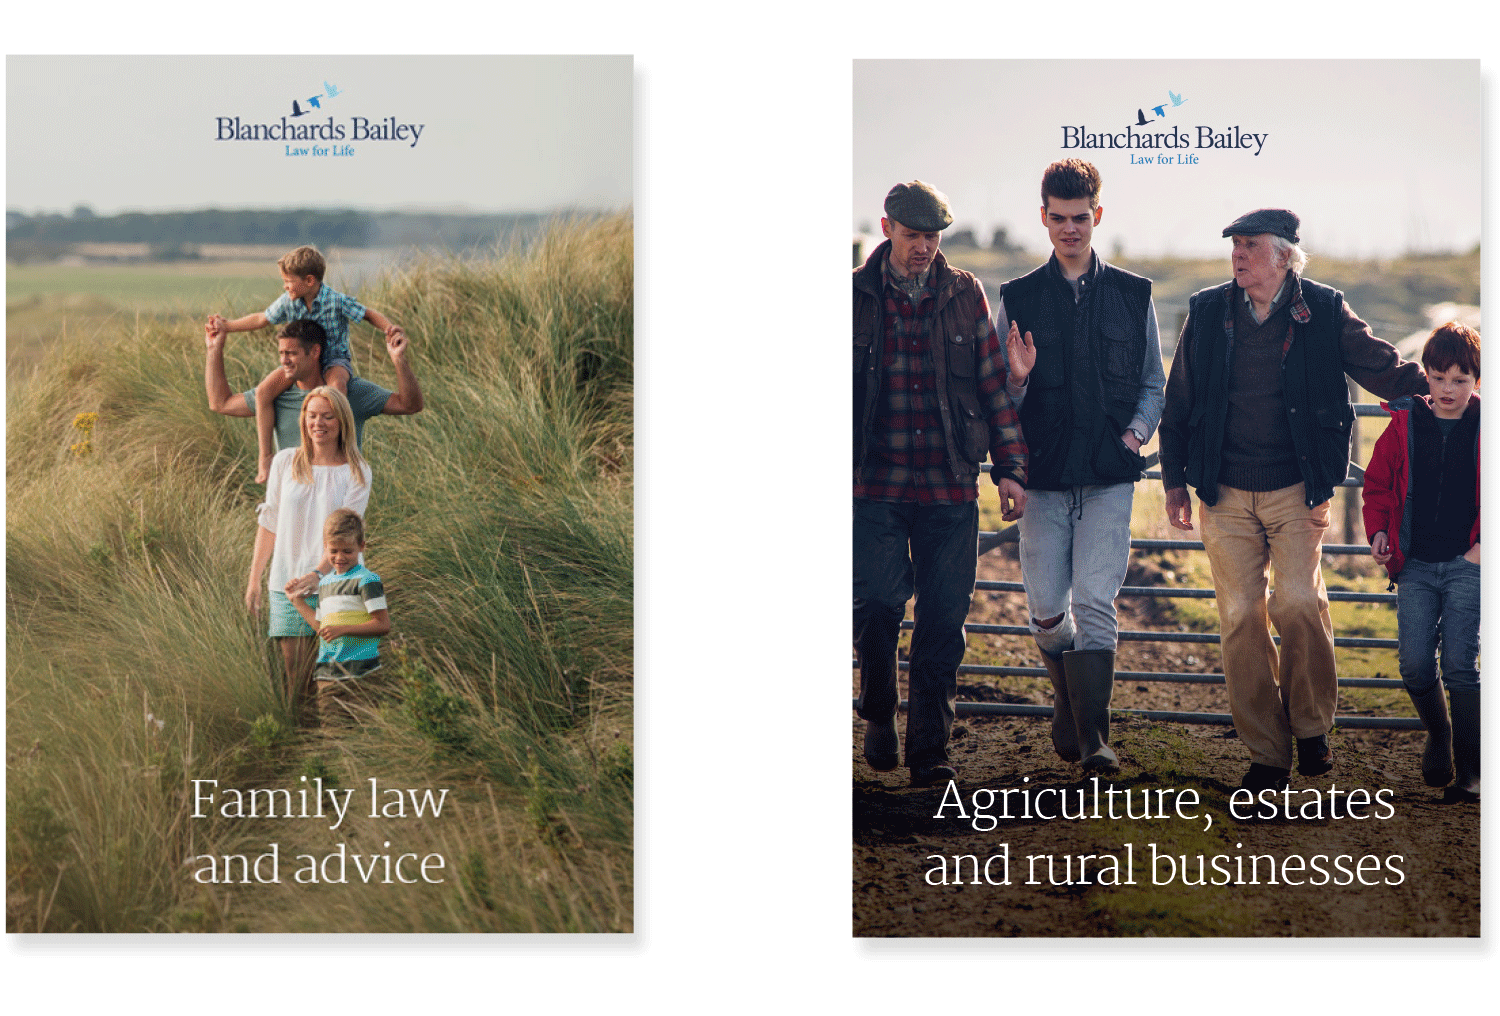 Blanchards Bailey Law leaflets